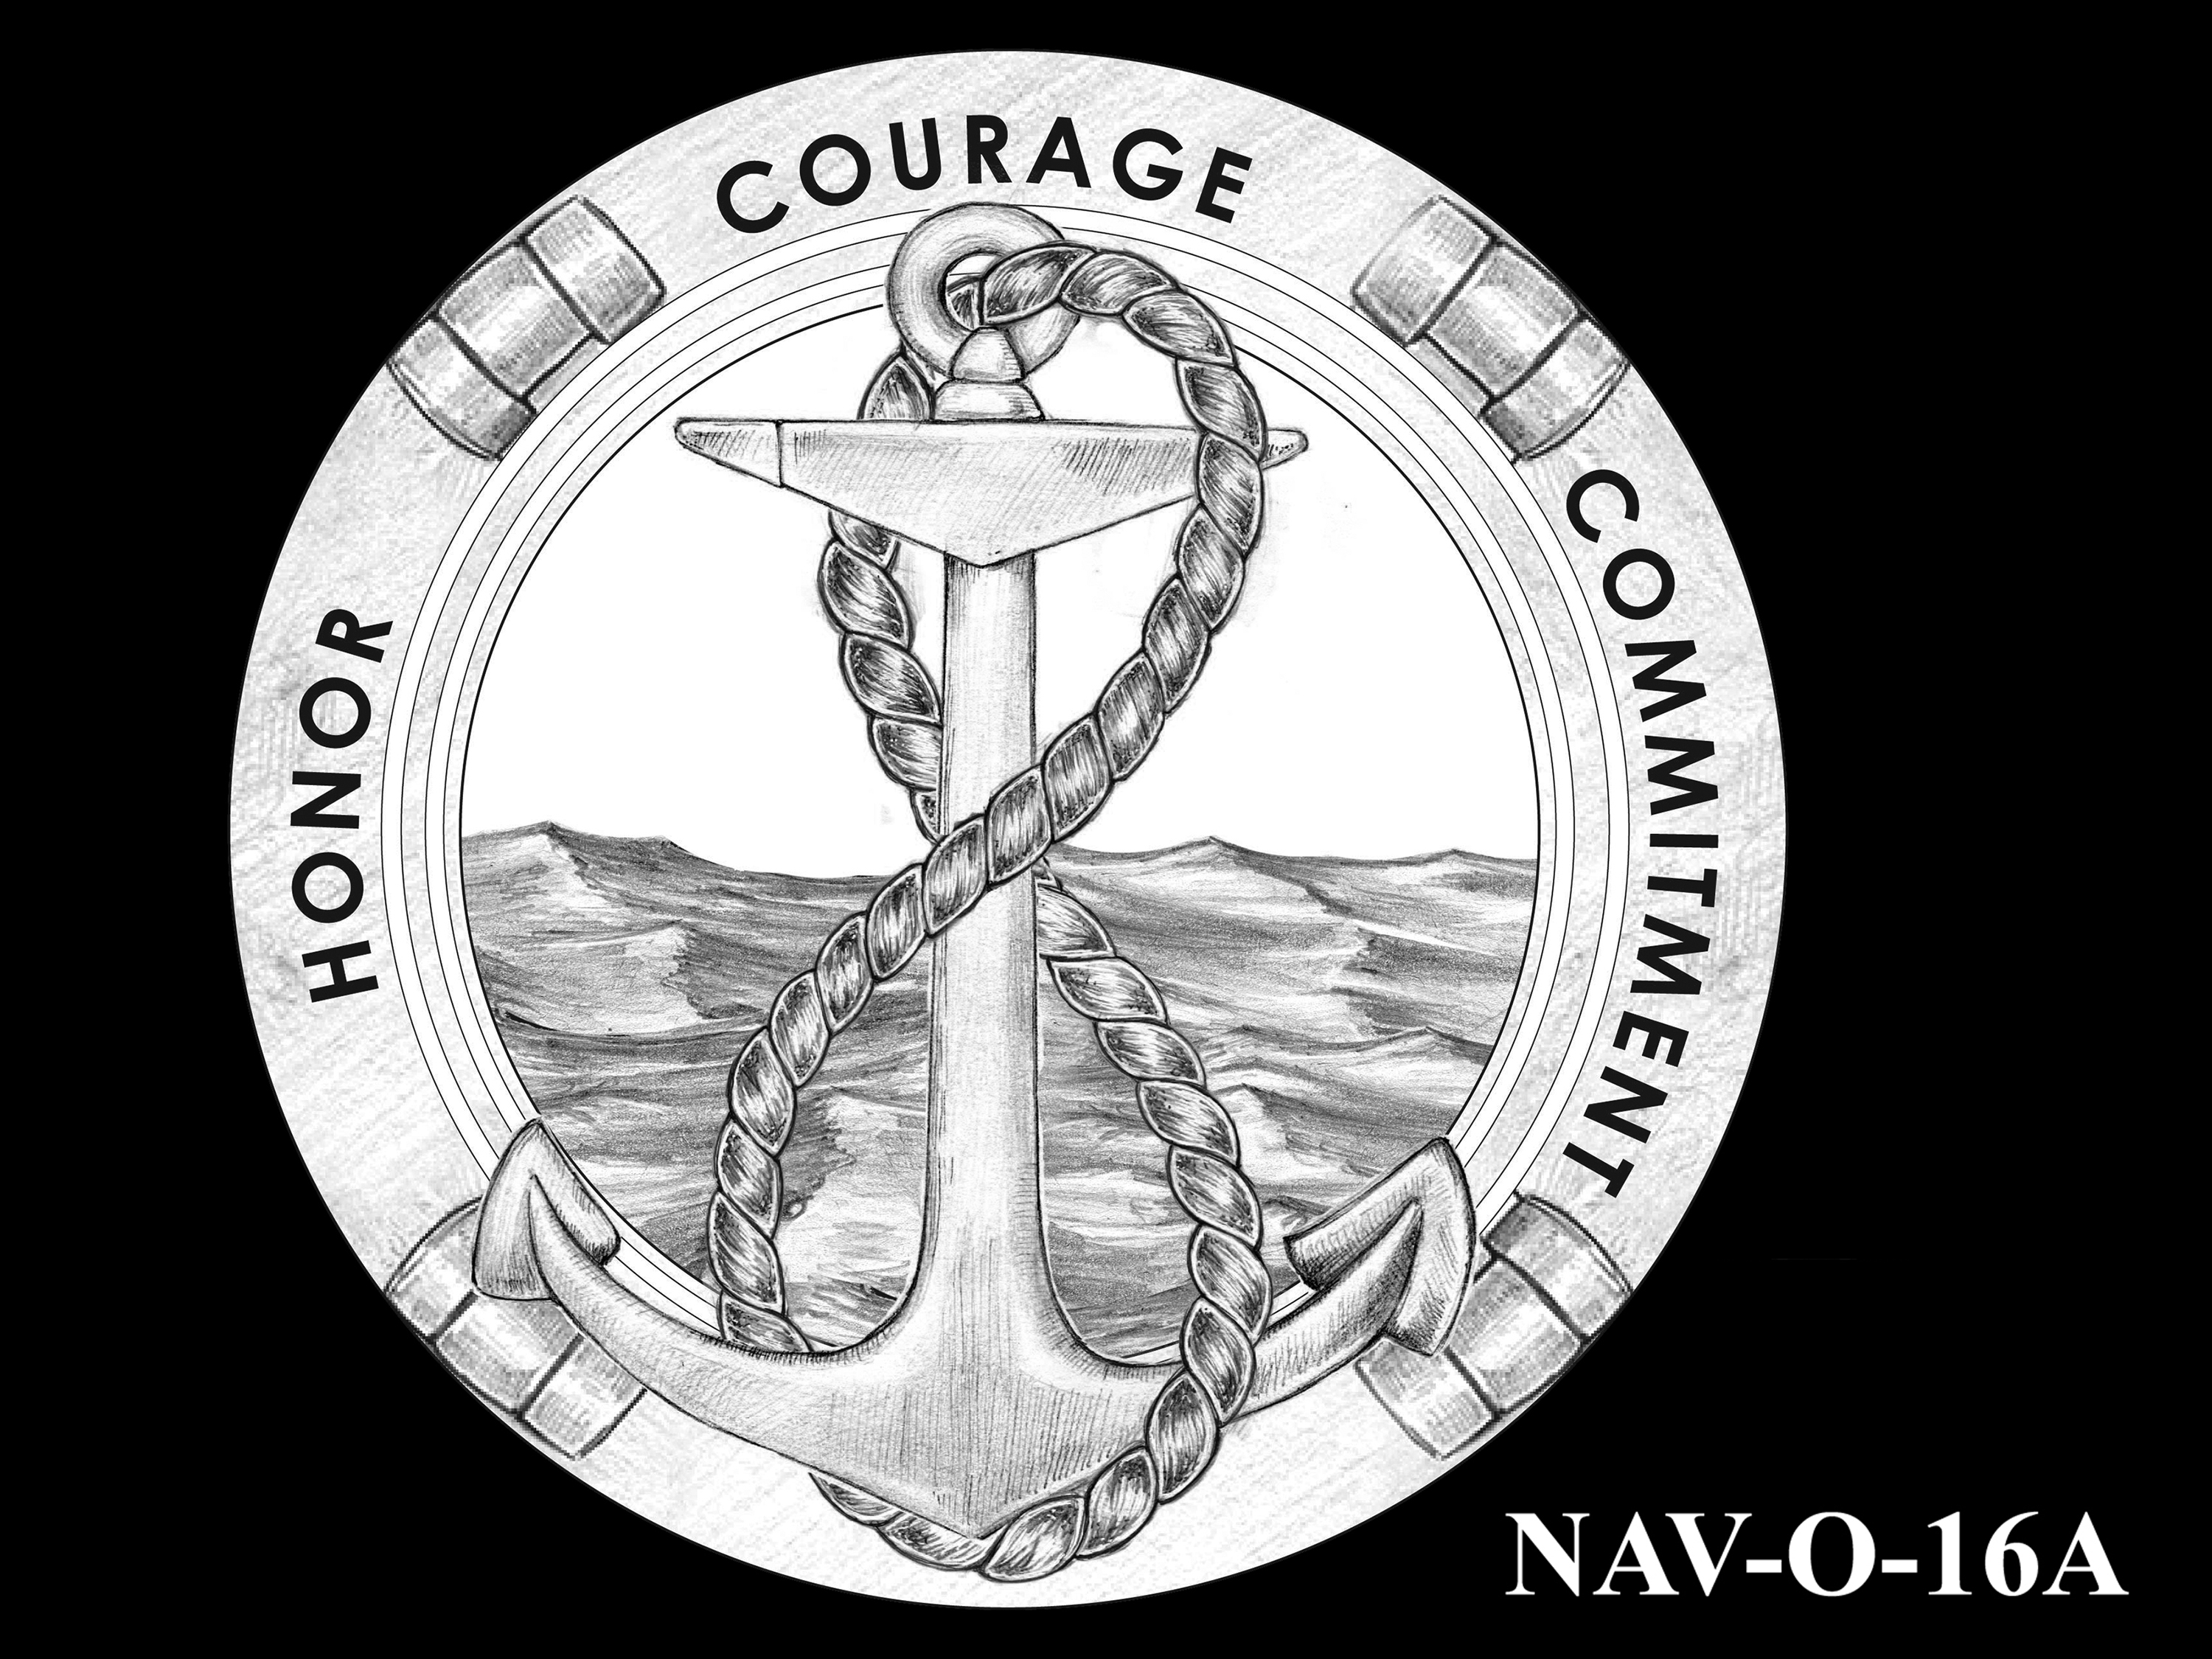 NAV-O-16A -- 2021 United States Navy Silver Medal  - Obverse